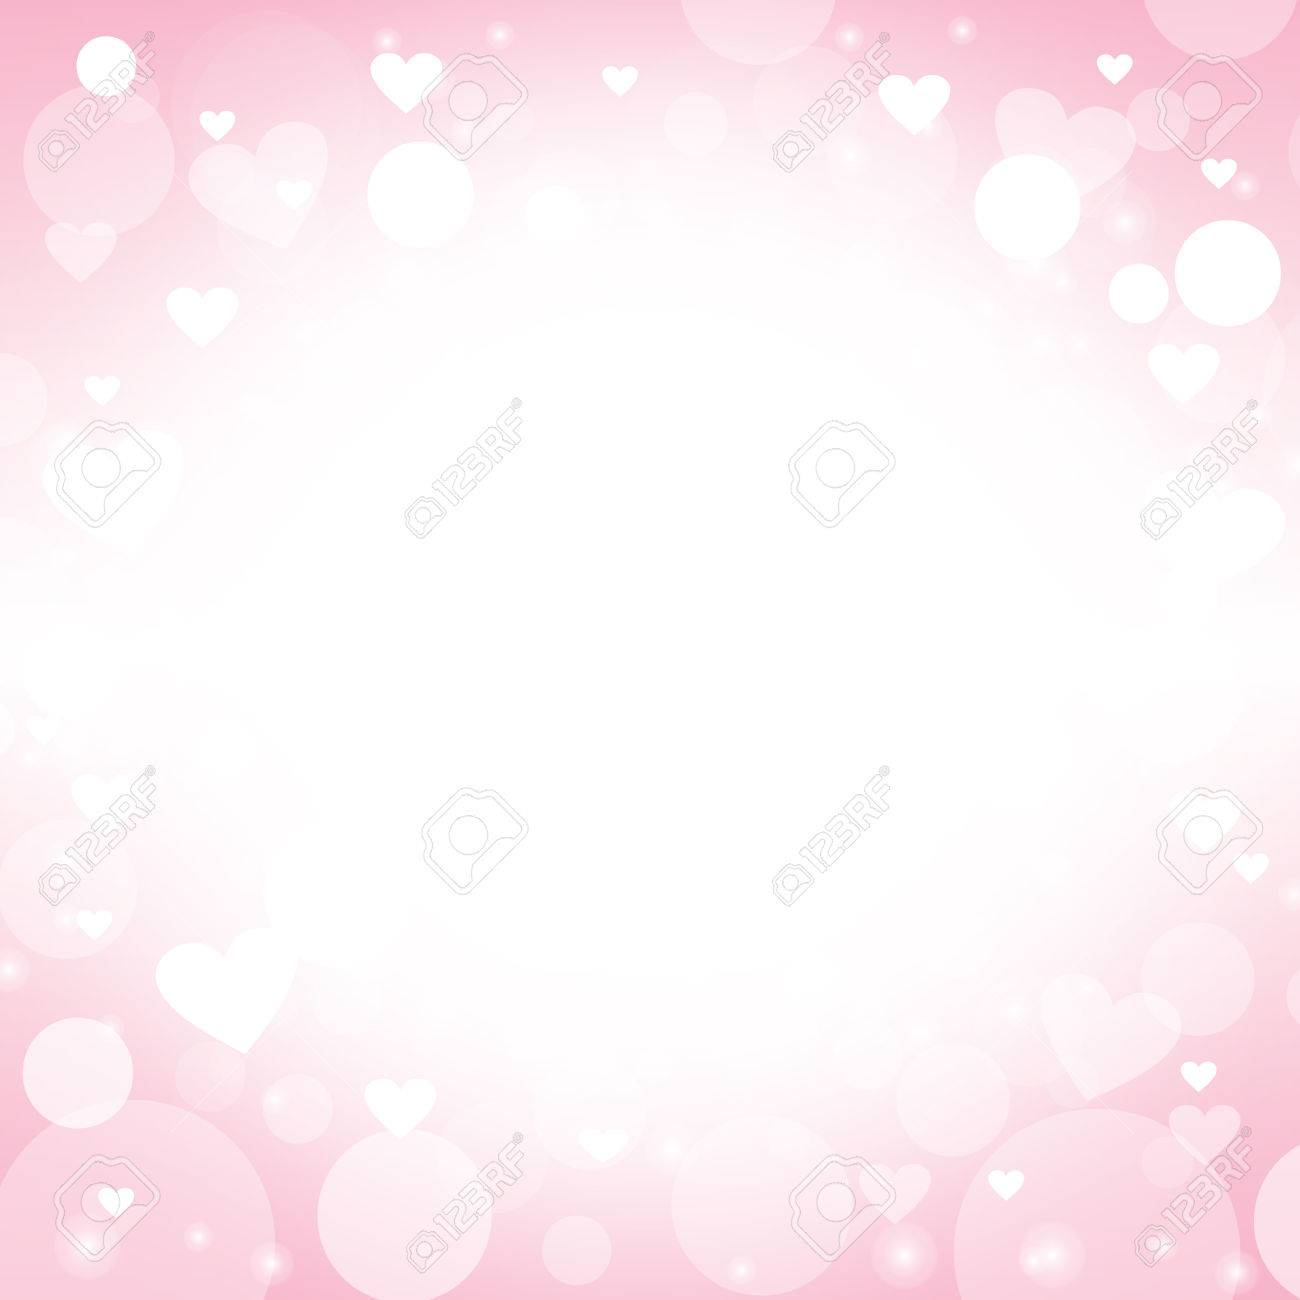 https://previews.123rf.com/images/jitphoto/jitphoto1507/jitphoto150700038/50080104-heart-shape-vector-abstract-pink-background-design-ideas-for-valentines-day-love-cards-love-letter-l.jpg